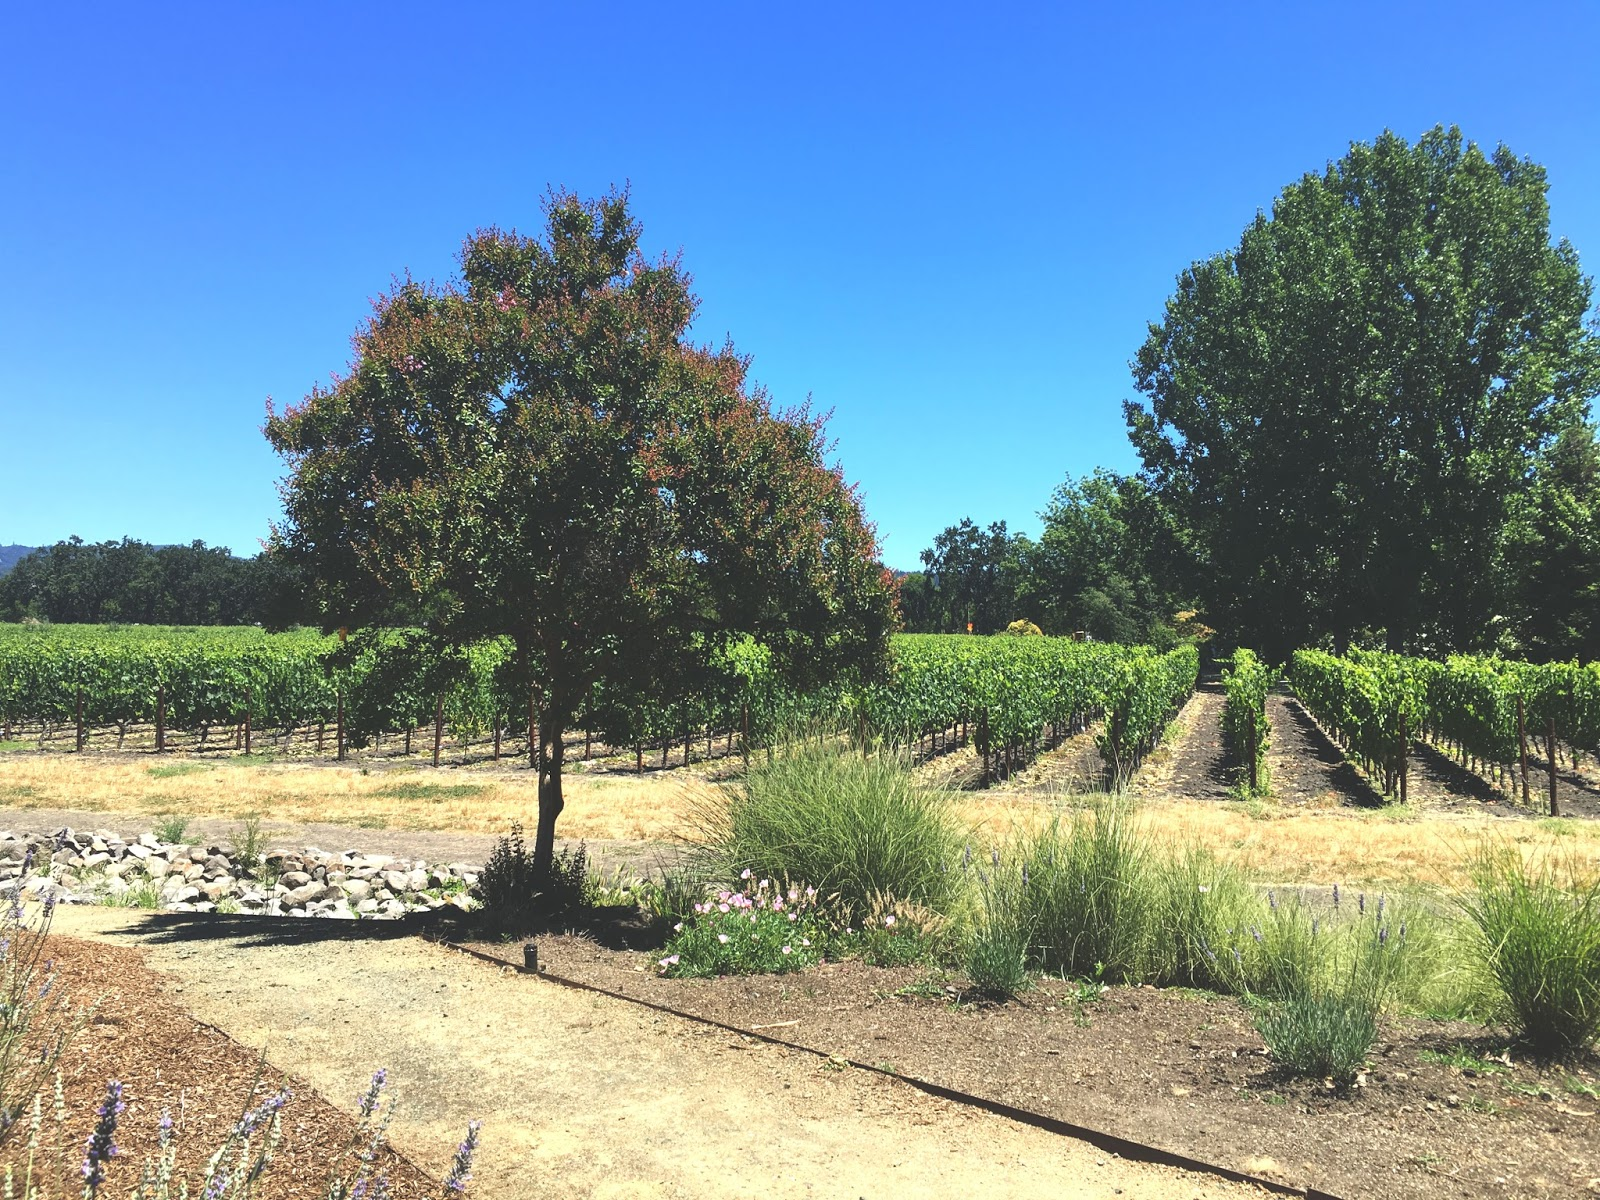 Rutherford Grove Winery in Napa, California